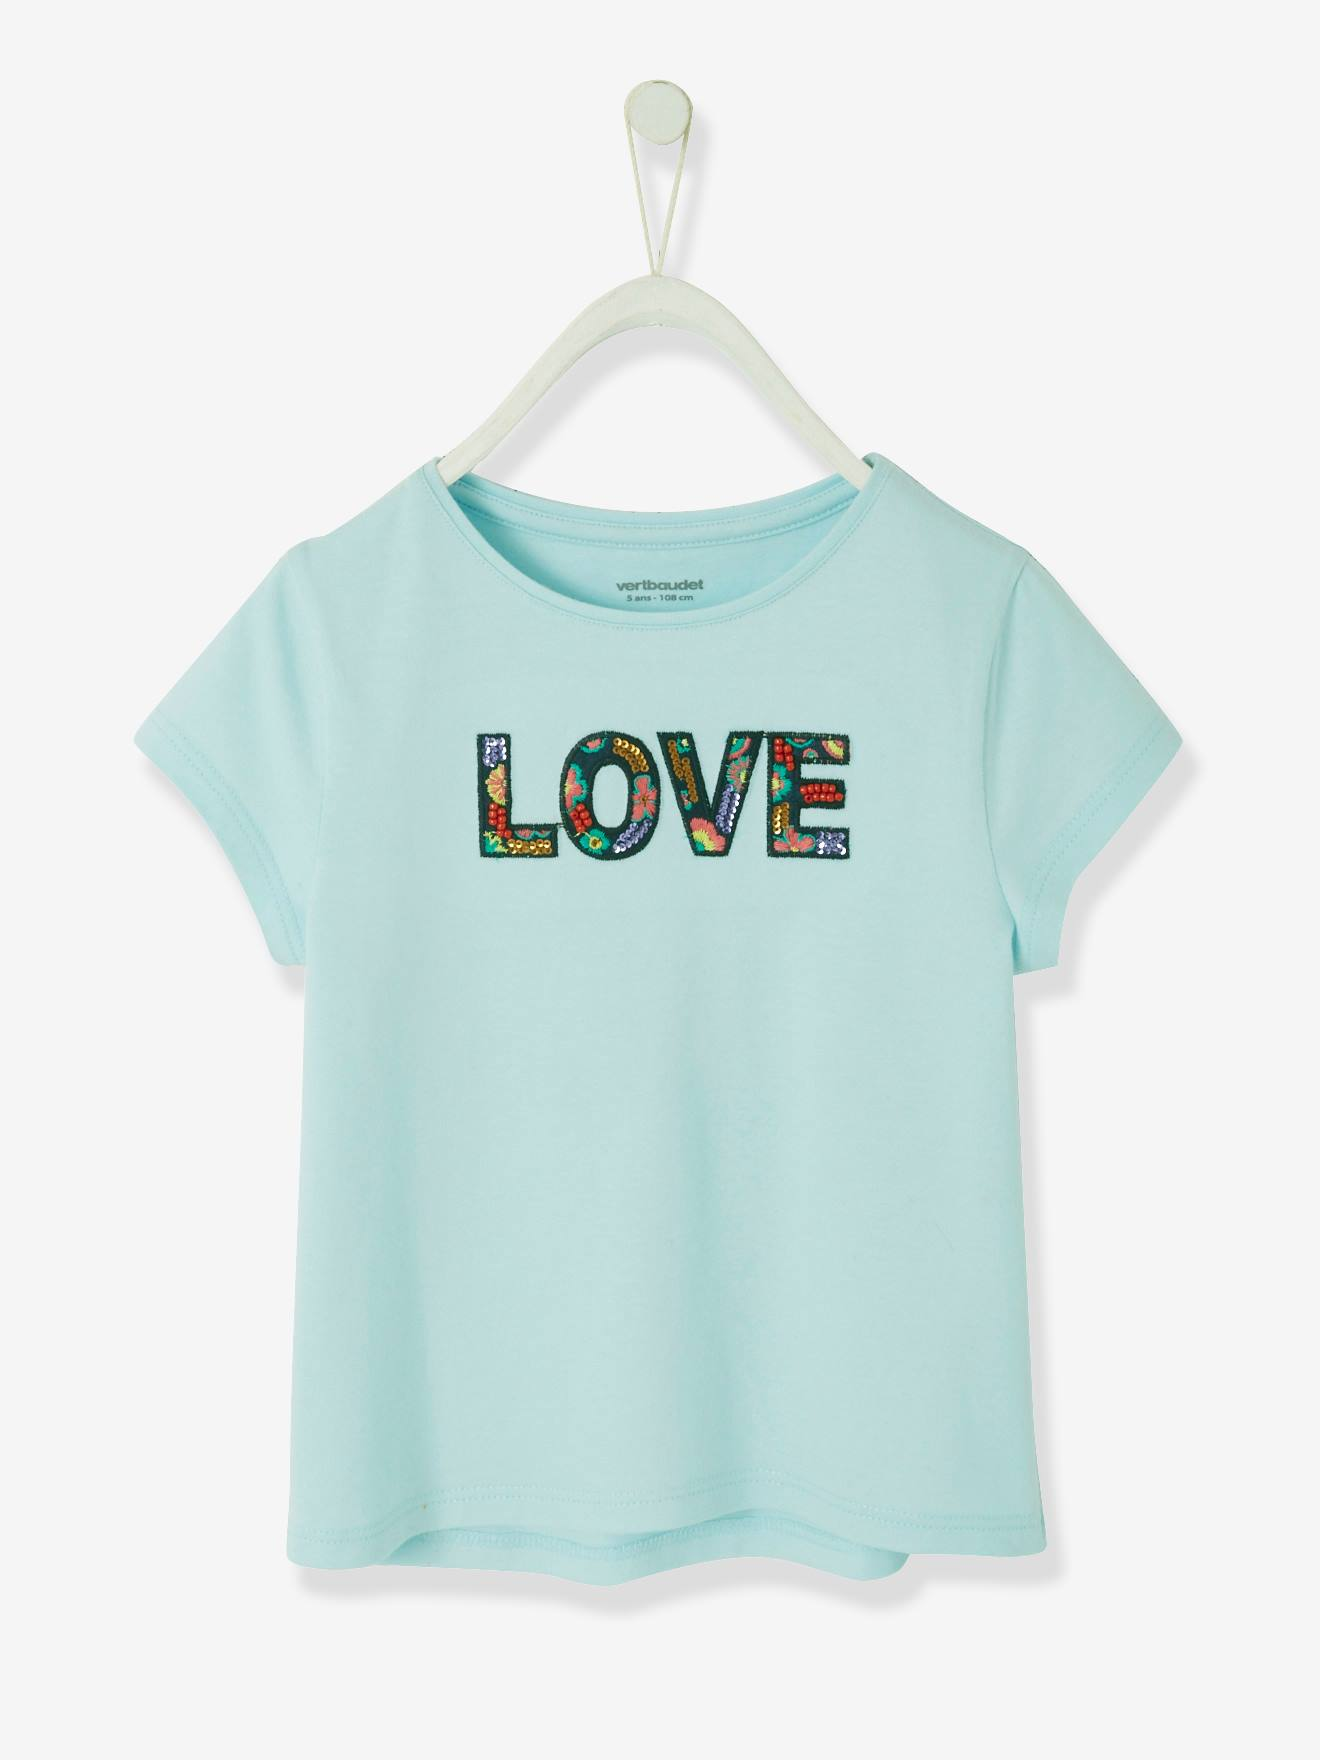 Girls Organic Cotton Blue /& Green Embroided Tops